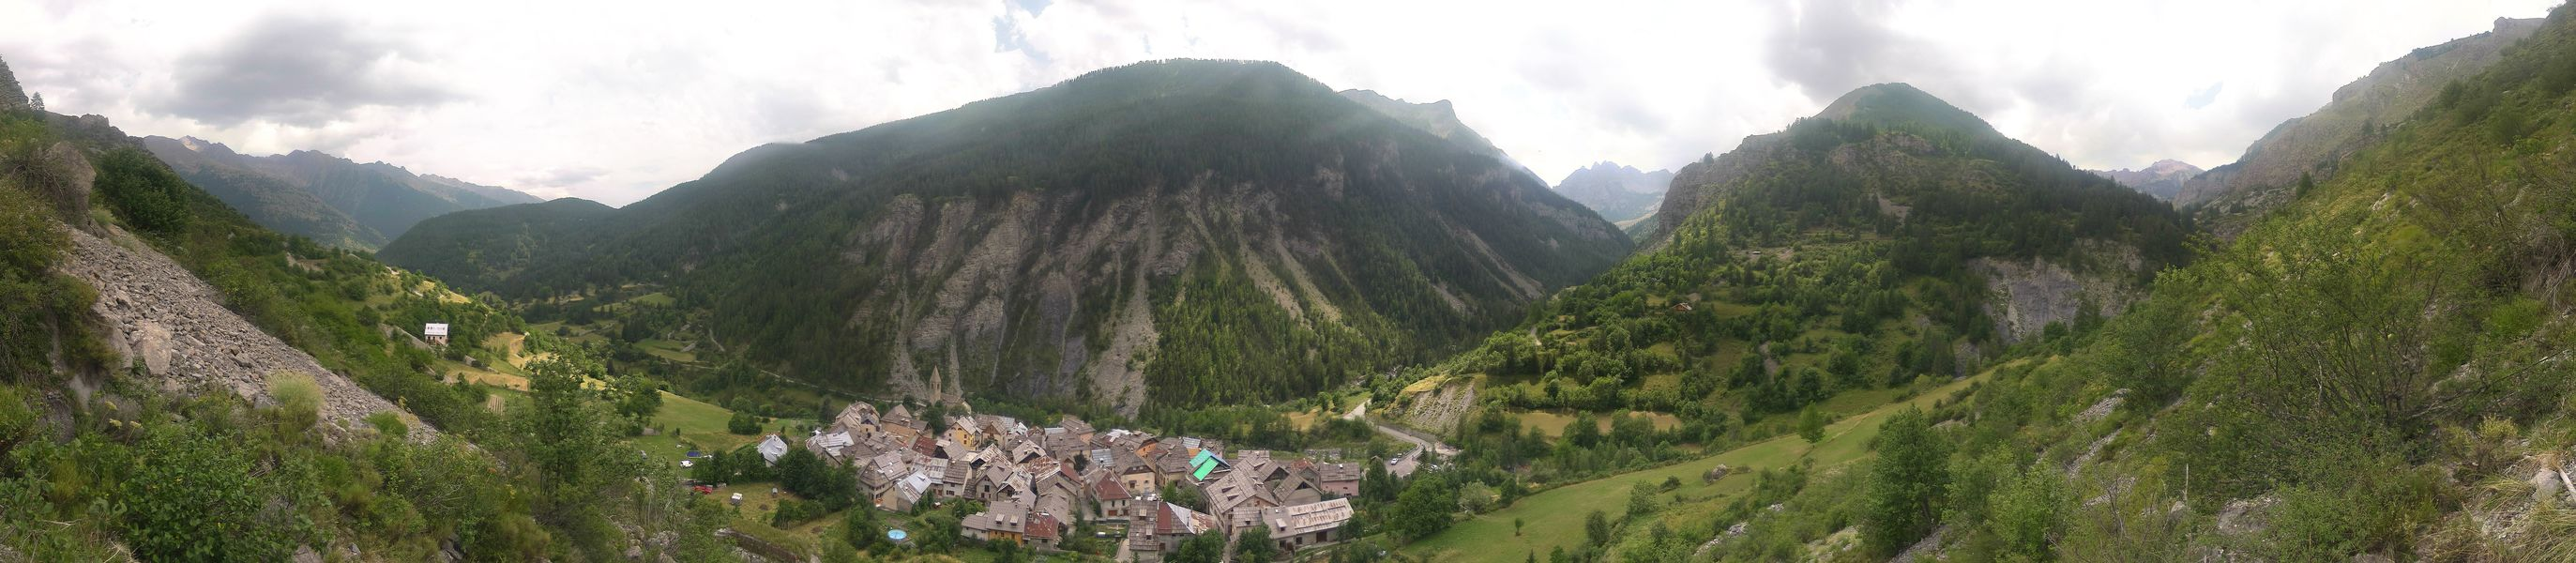 Webcam St Dalmas le Selvage - Mairie